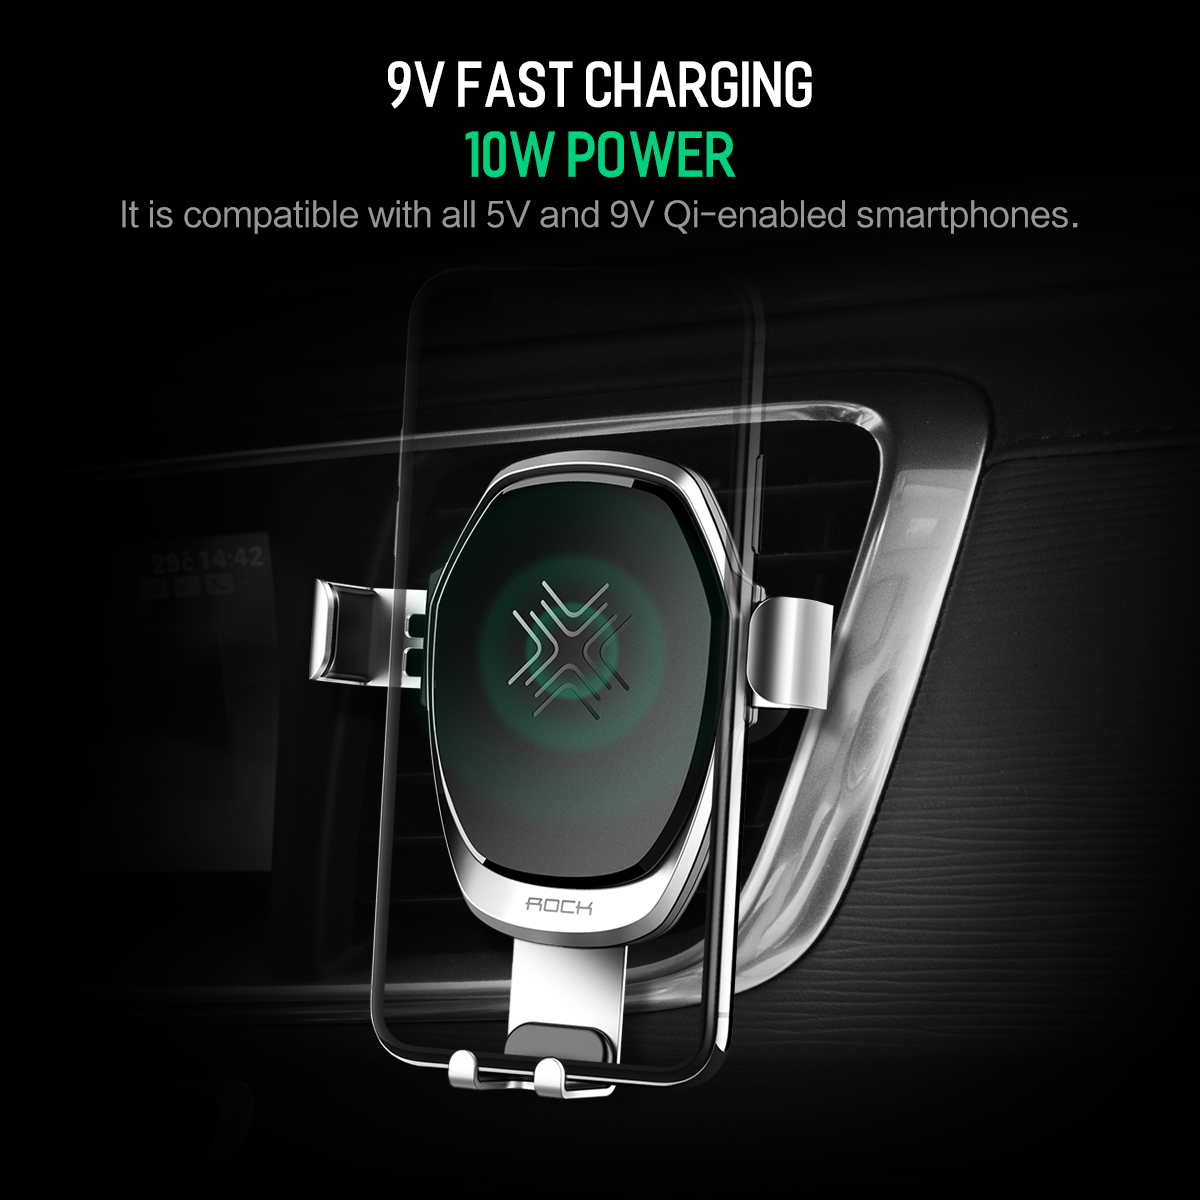 HTB1VkSKdi6guuRkSmLyq6AulFXac - 10W QI Wireless Car Charger Gravity Holder , ROCK for iPhone X 8 Plus Samsung Galaxy S8 S7 Note 8 Quick Charge Charging Stand